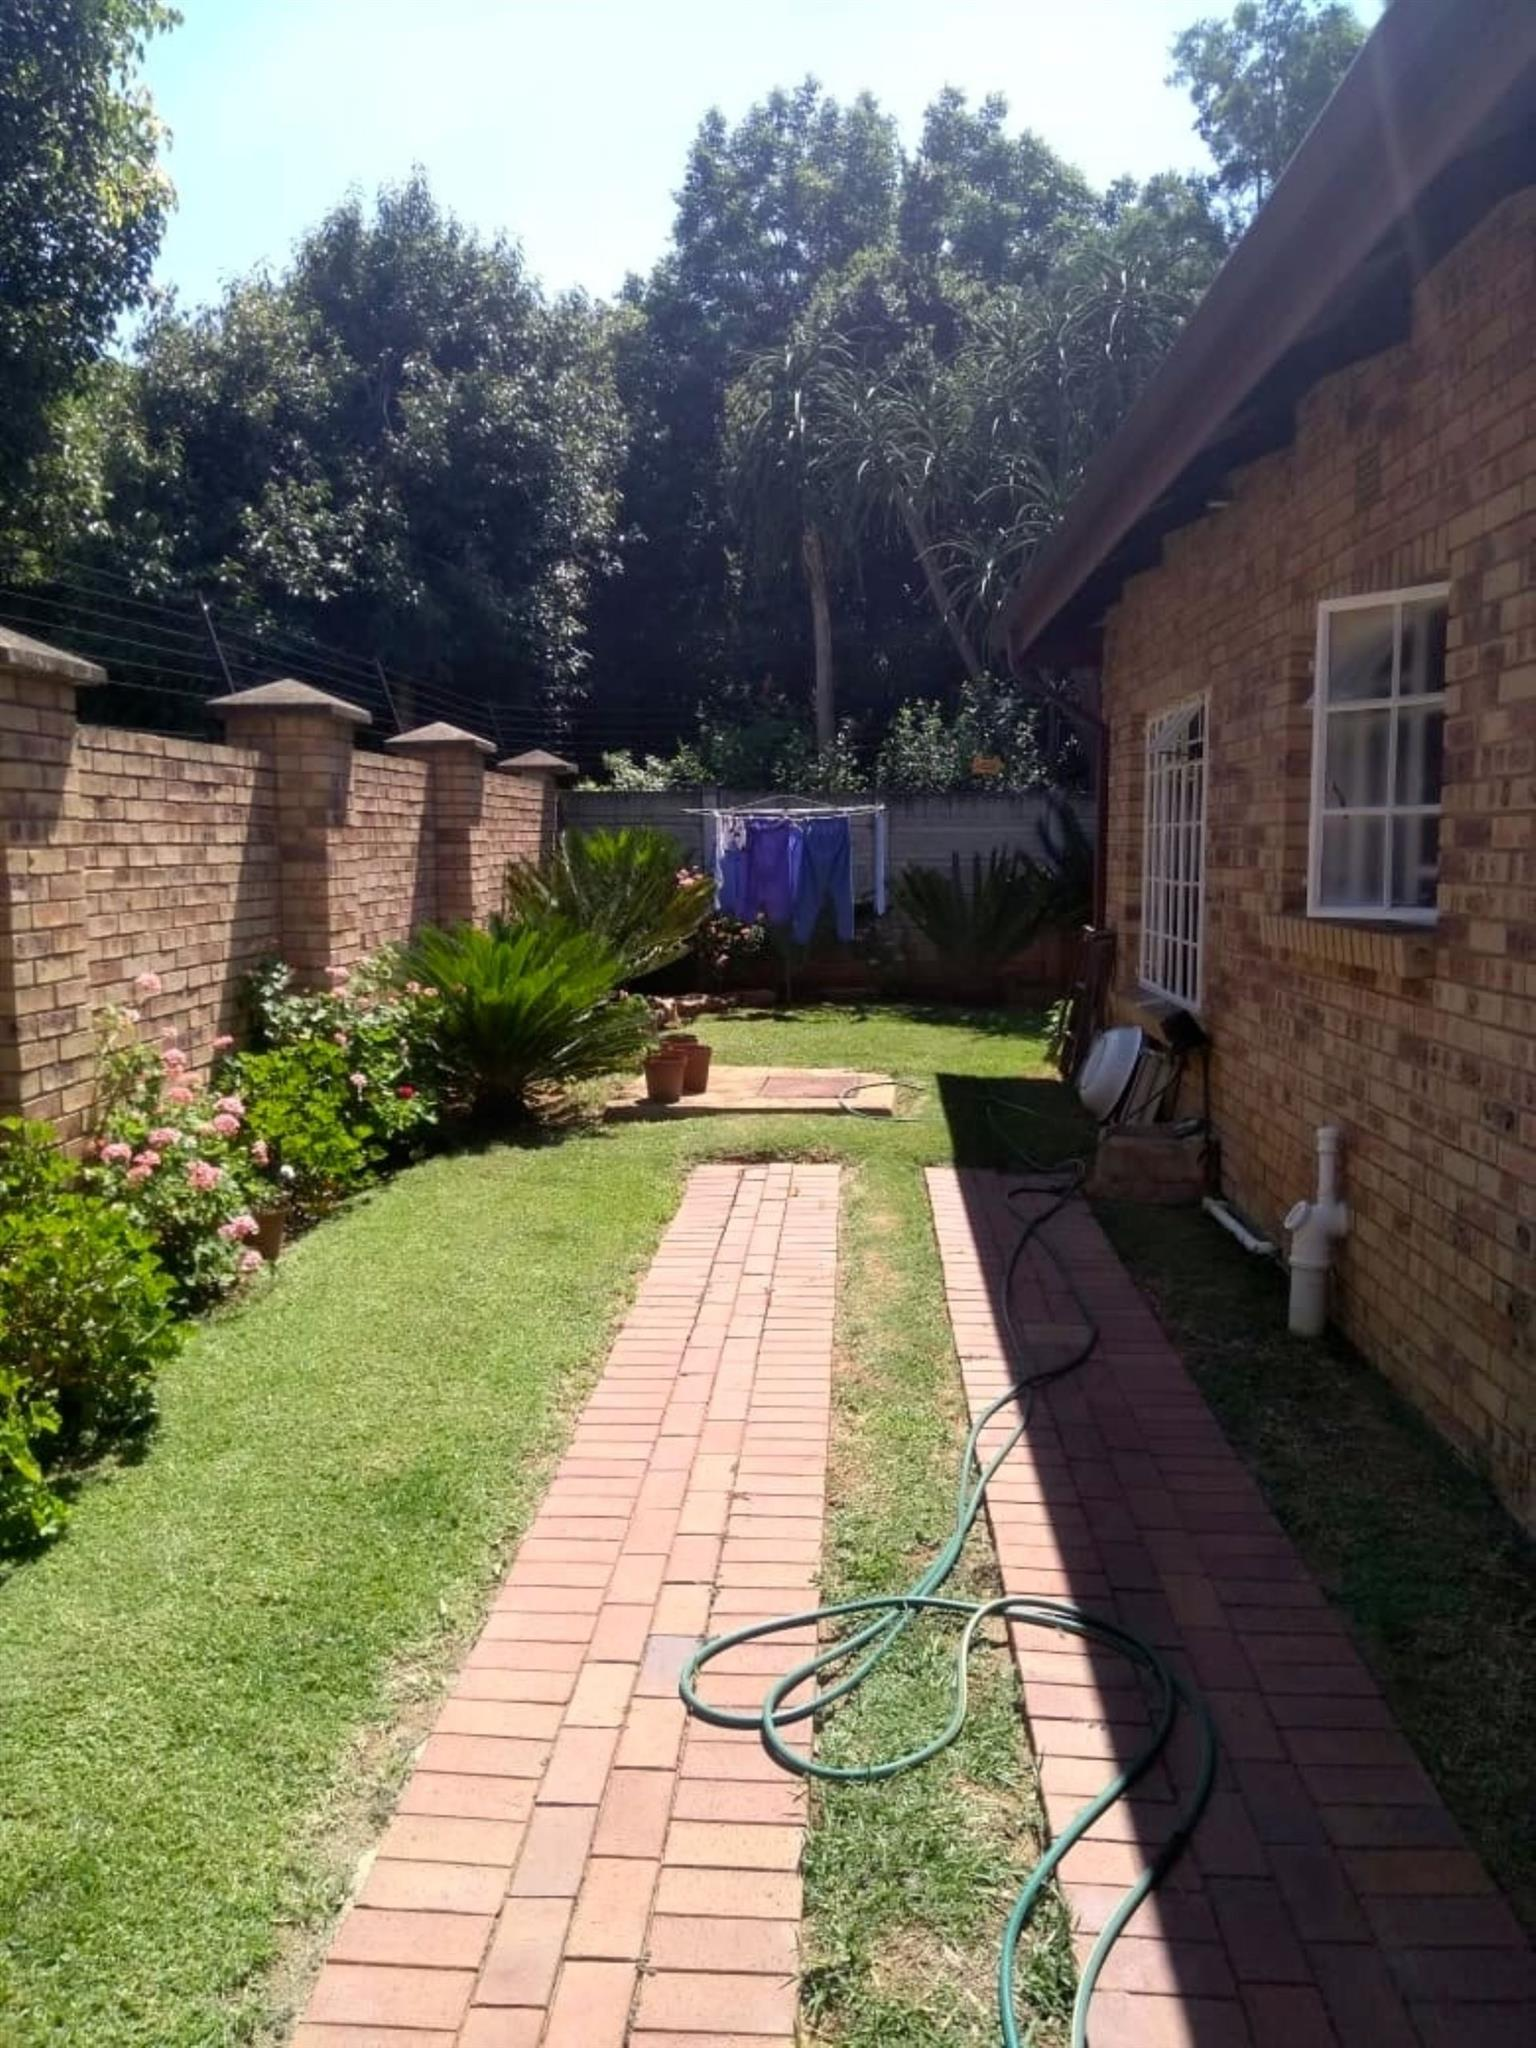 Townhouse For Sale in VRYHEID